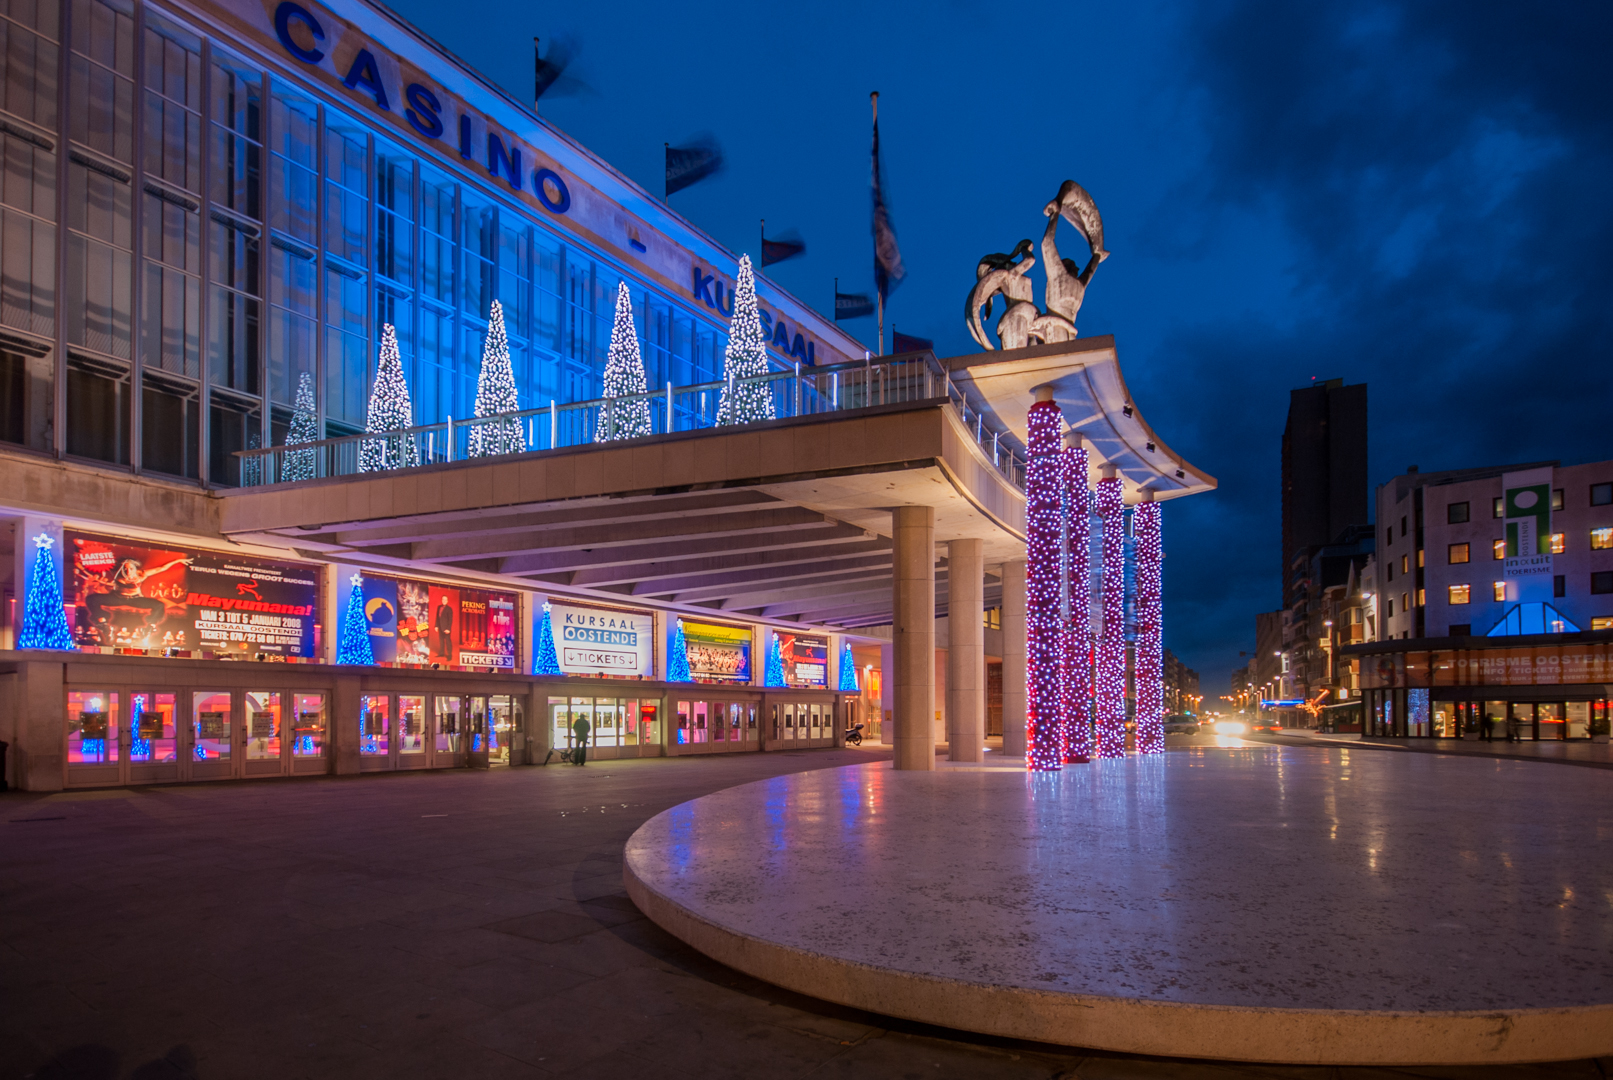 Casino cursaal oostende the history of gambling in las vegas